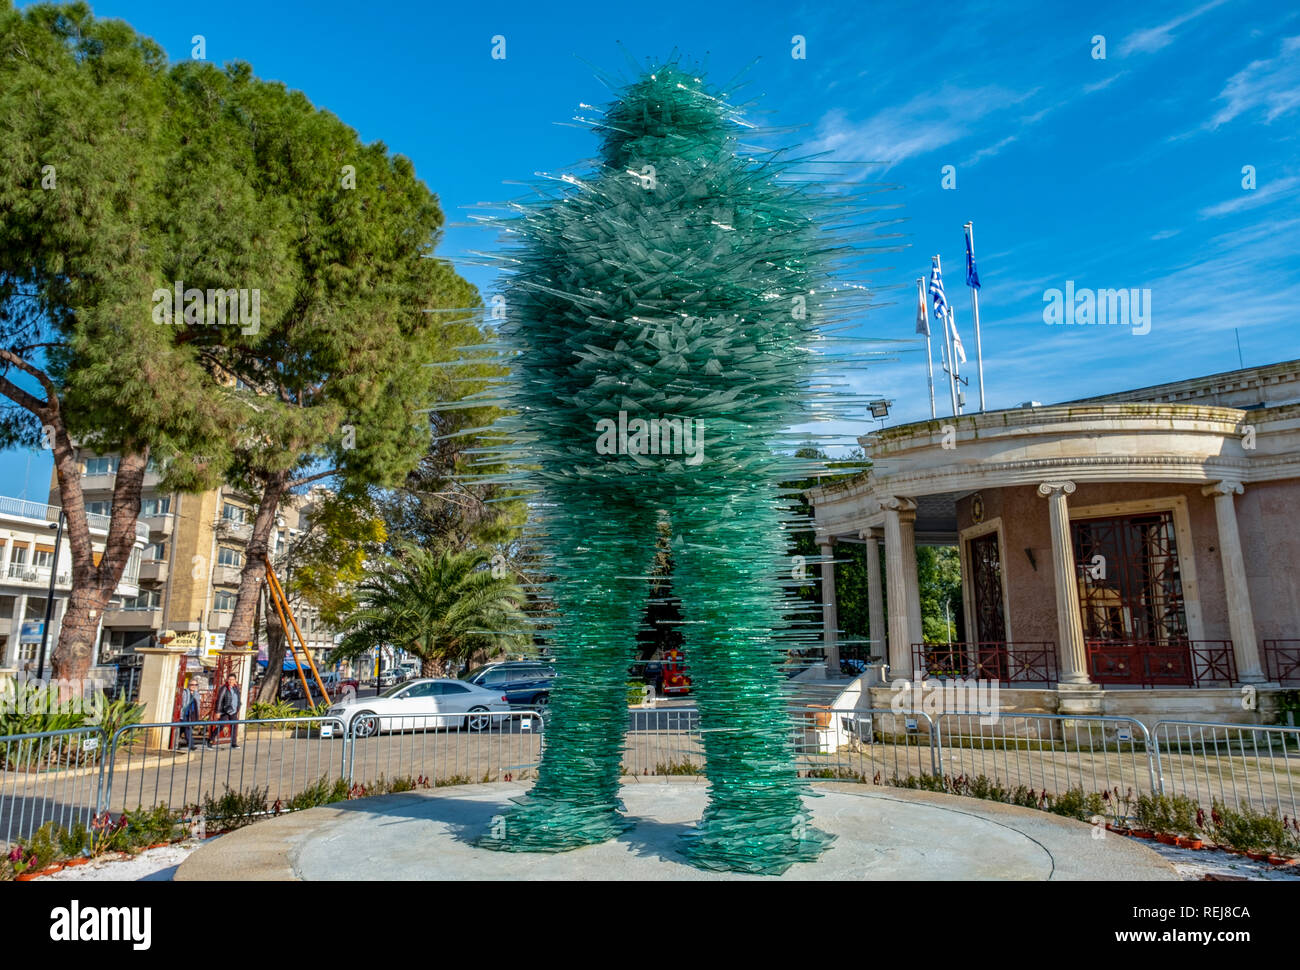 'The Poet' a glass sculpture by Greek artist Costas Varotsos which is situated next to Eleftheria Square in the centre of Nicosia. - Stock Image